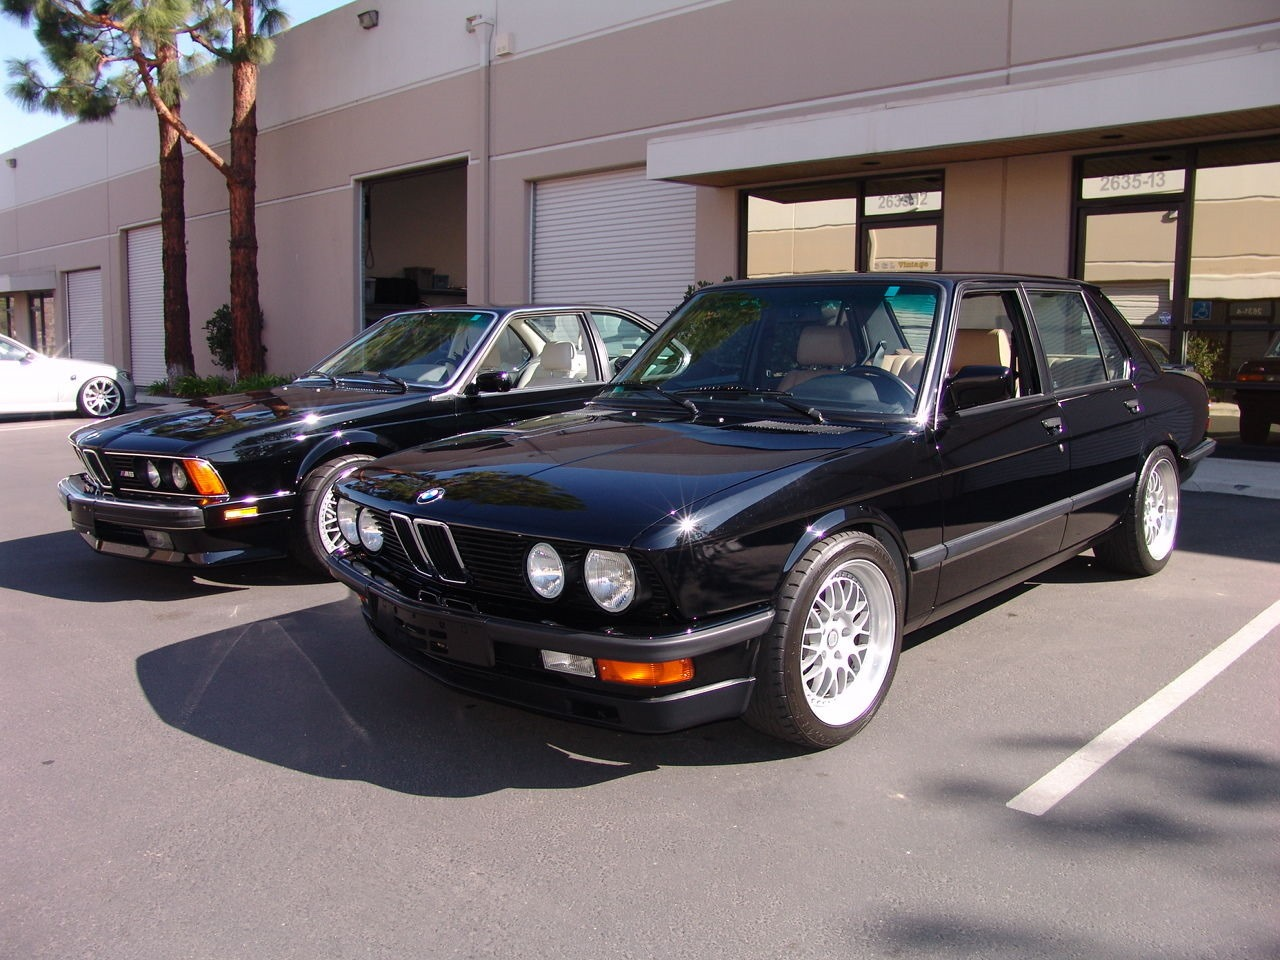 Low Mileage 1988 BMW M5 Previously Owned by Frank Gerber Up for